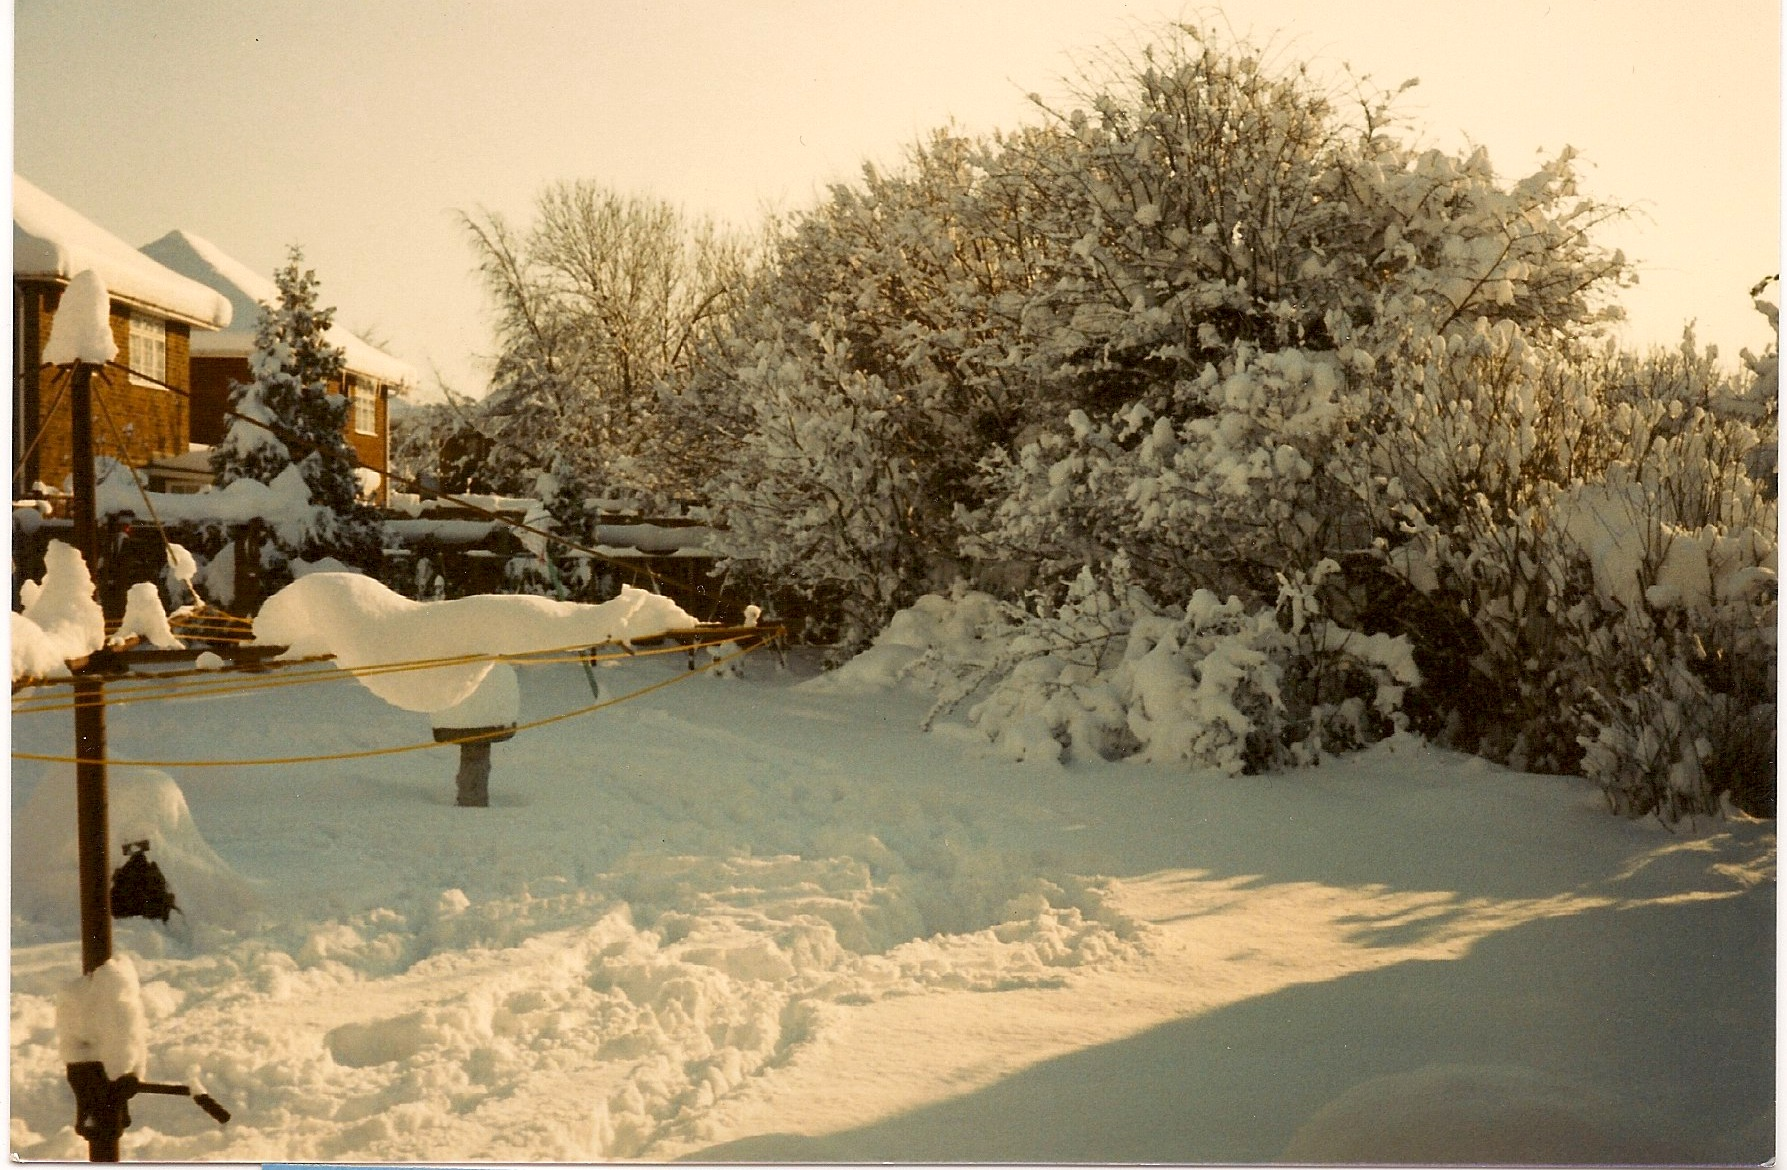 Snow in the garden of 27 Wigmore Road in 1987